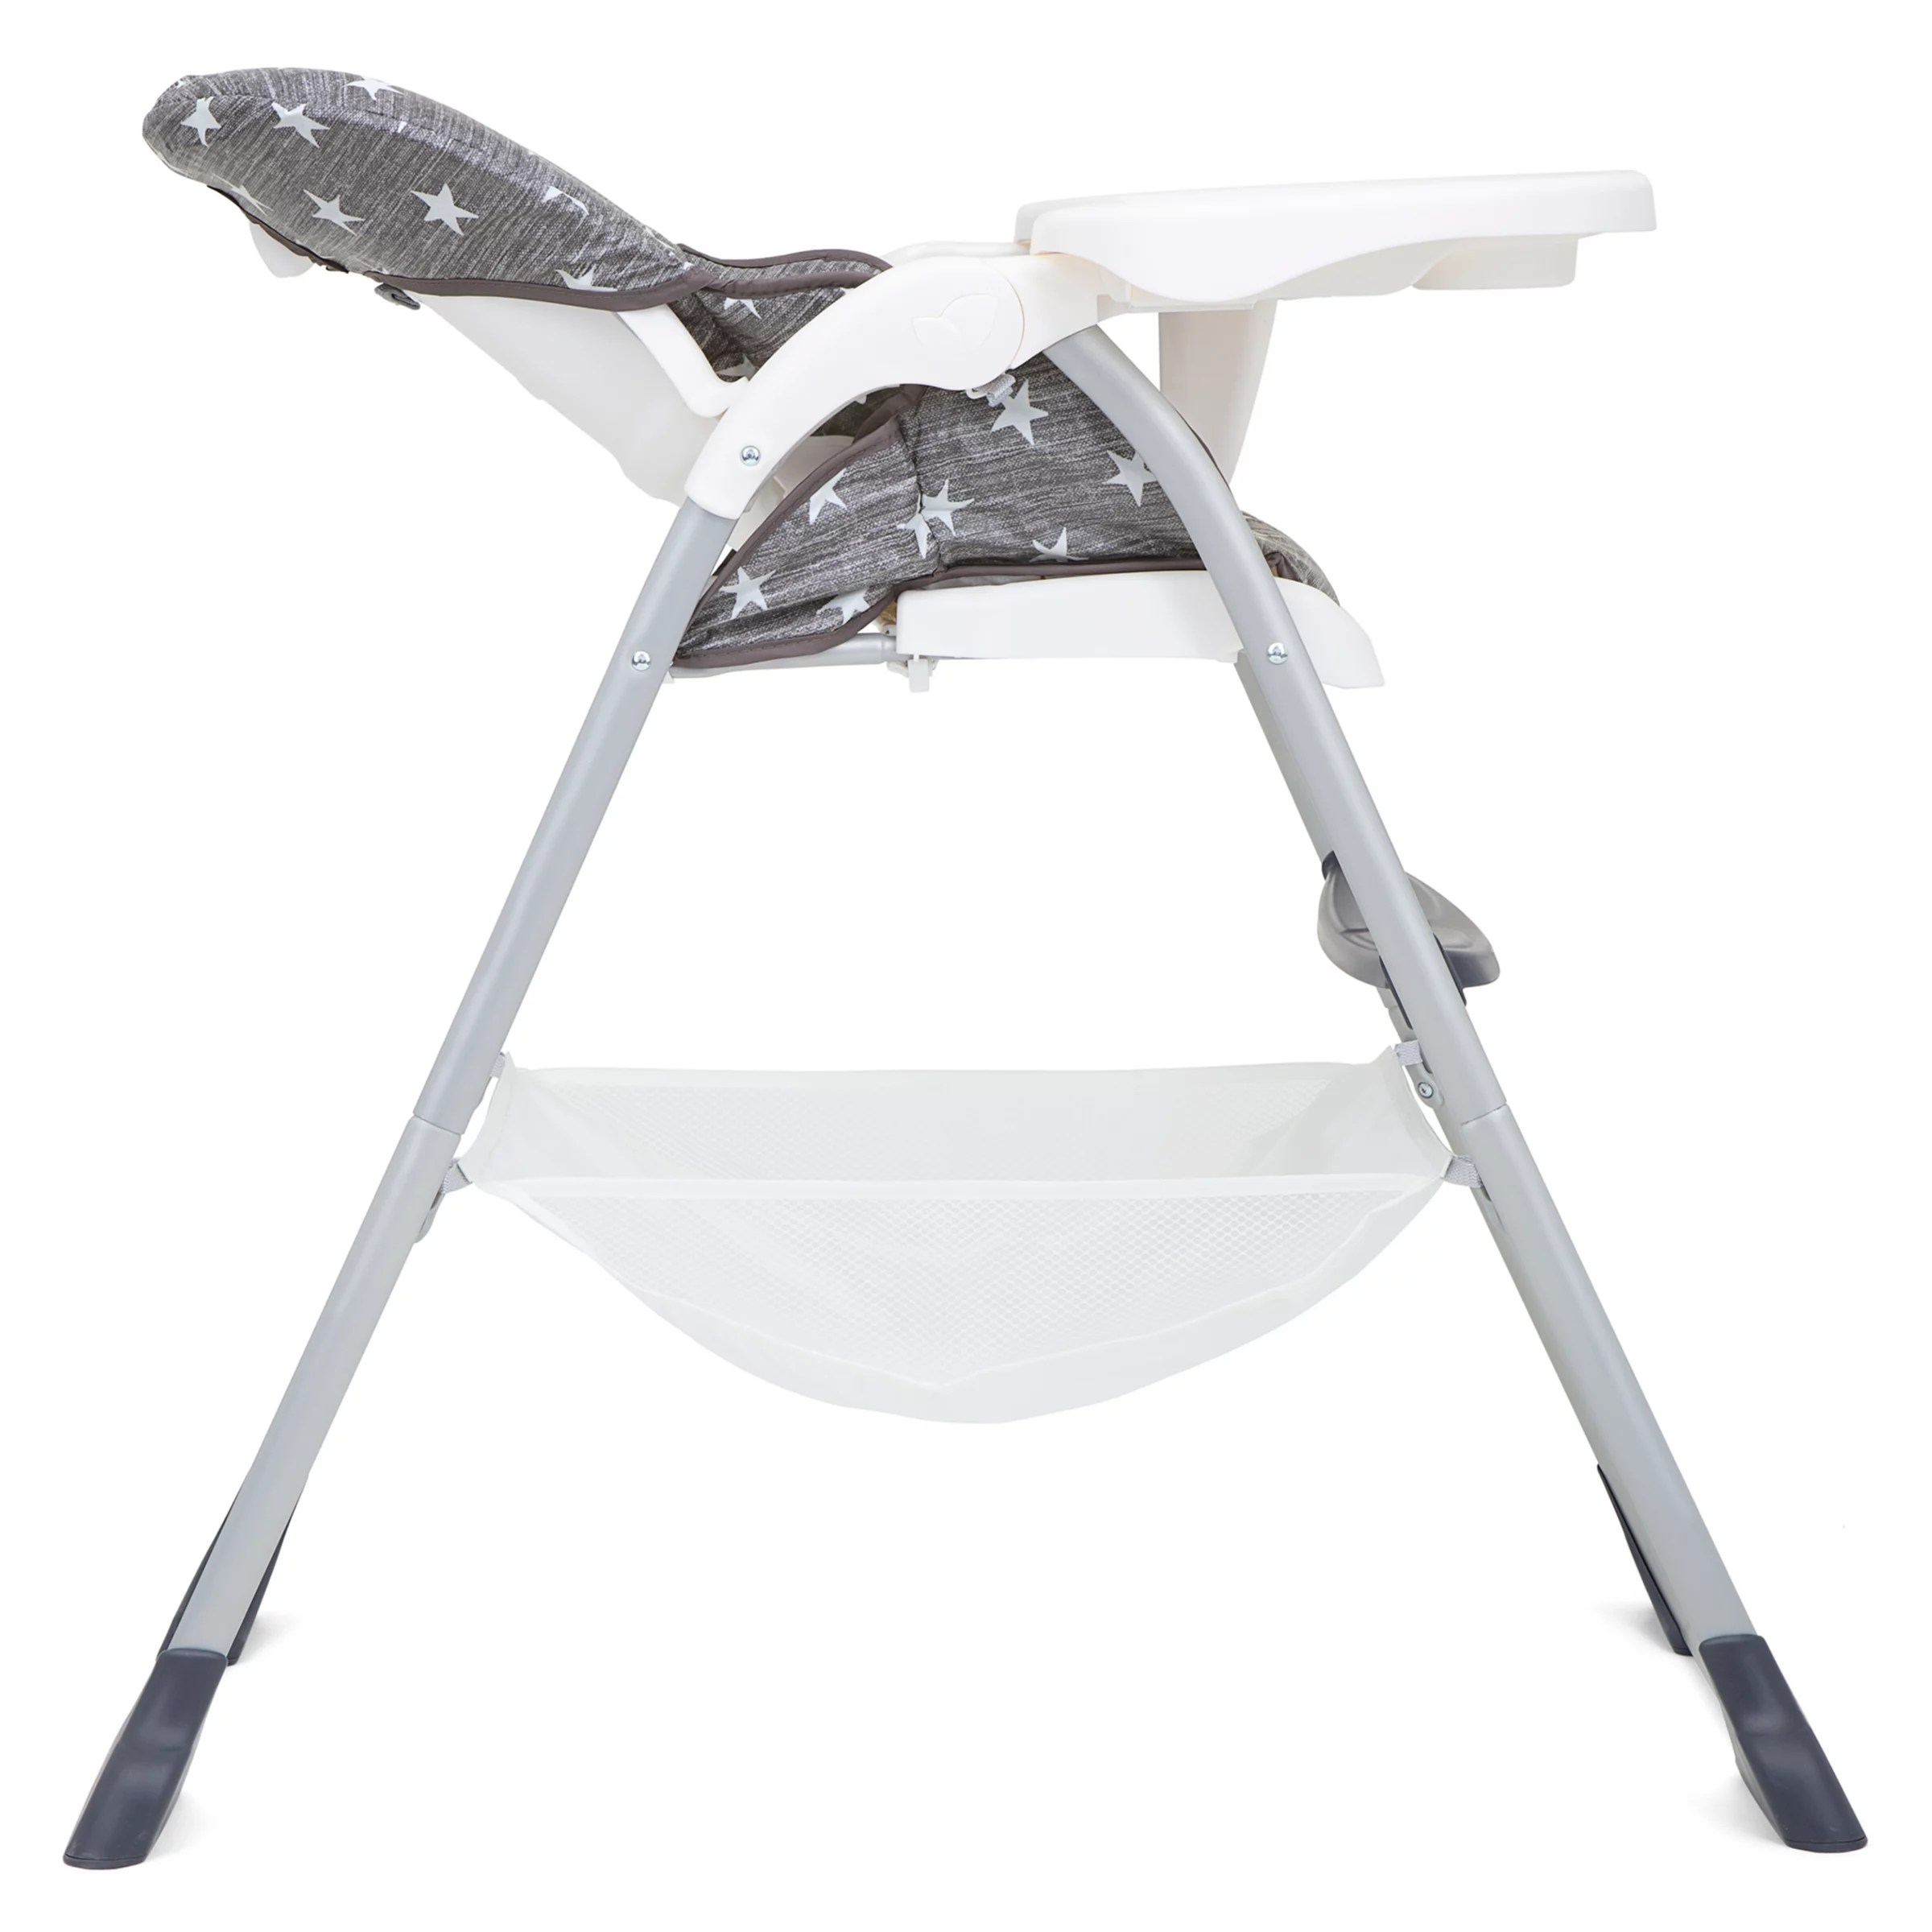 Joie Baby High Chair John Lewis Joie Baby Mimzy Snacker Highchair Twinkle Linen At John Lewis